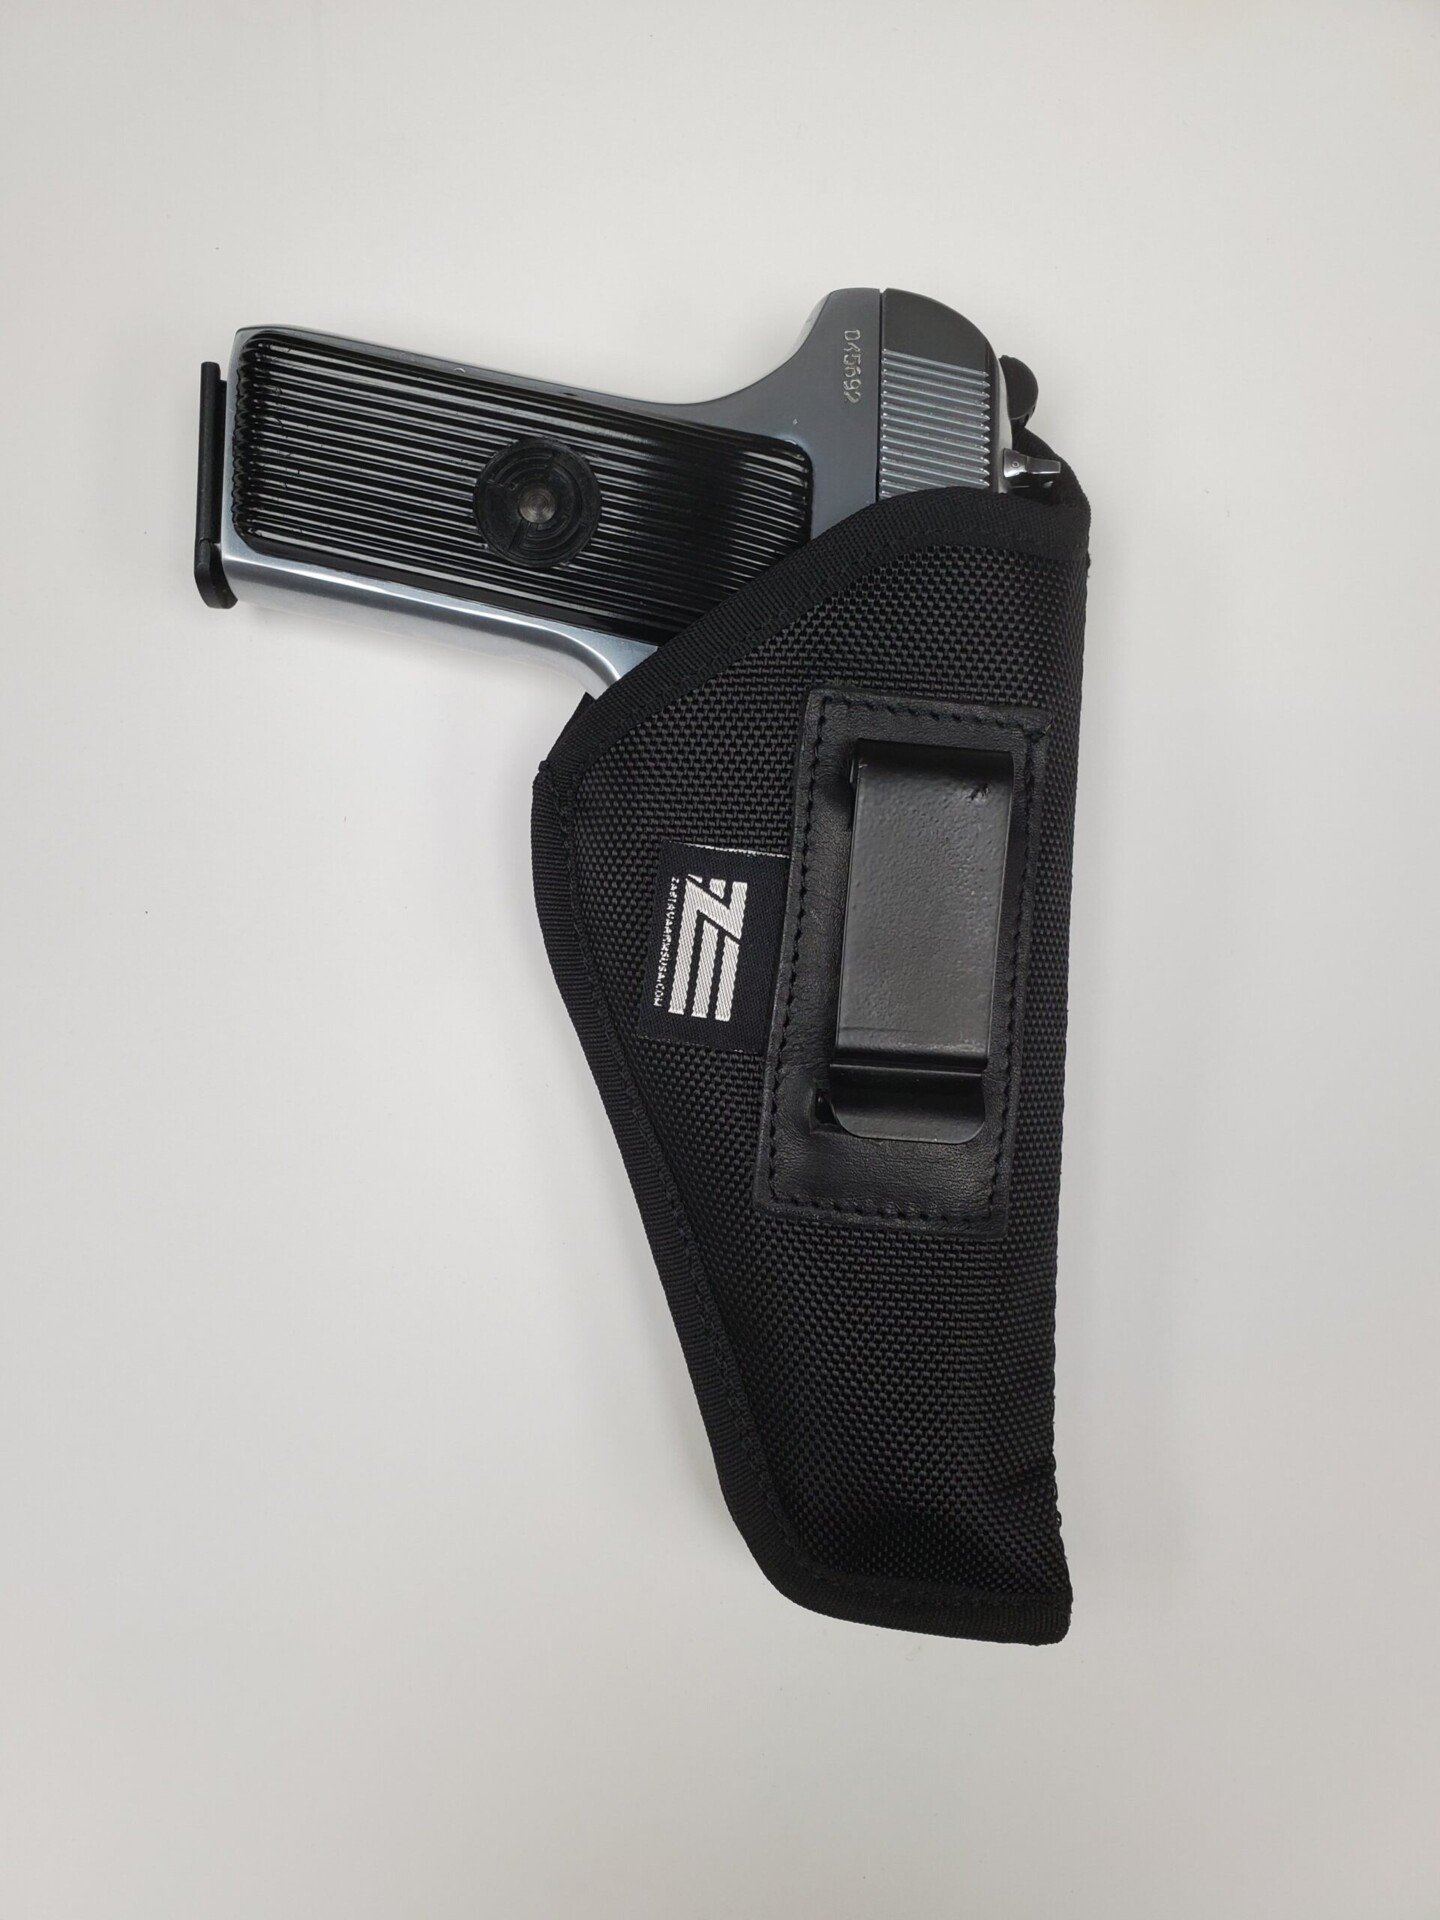 zastava Tokarev concealable holster IWB Holster M57A M70AA M88A